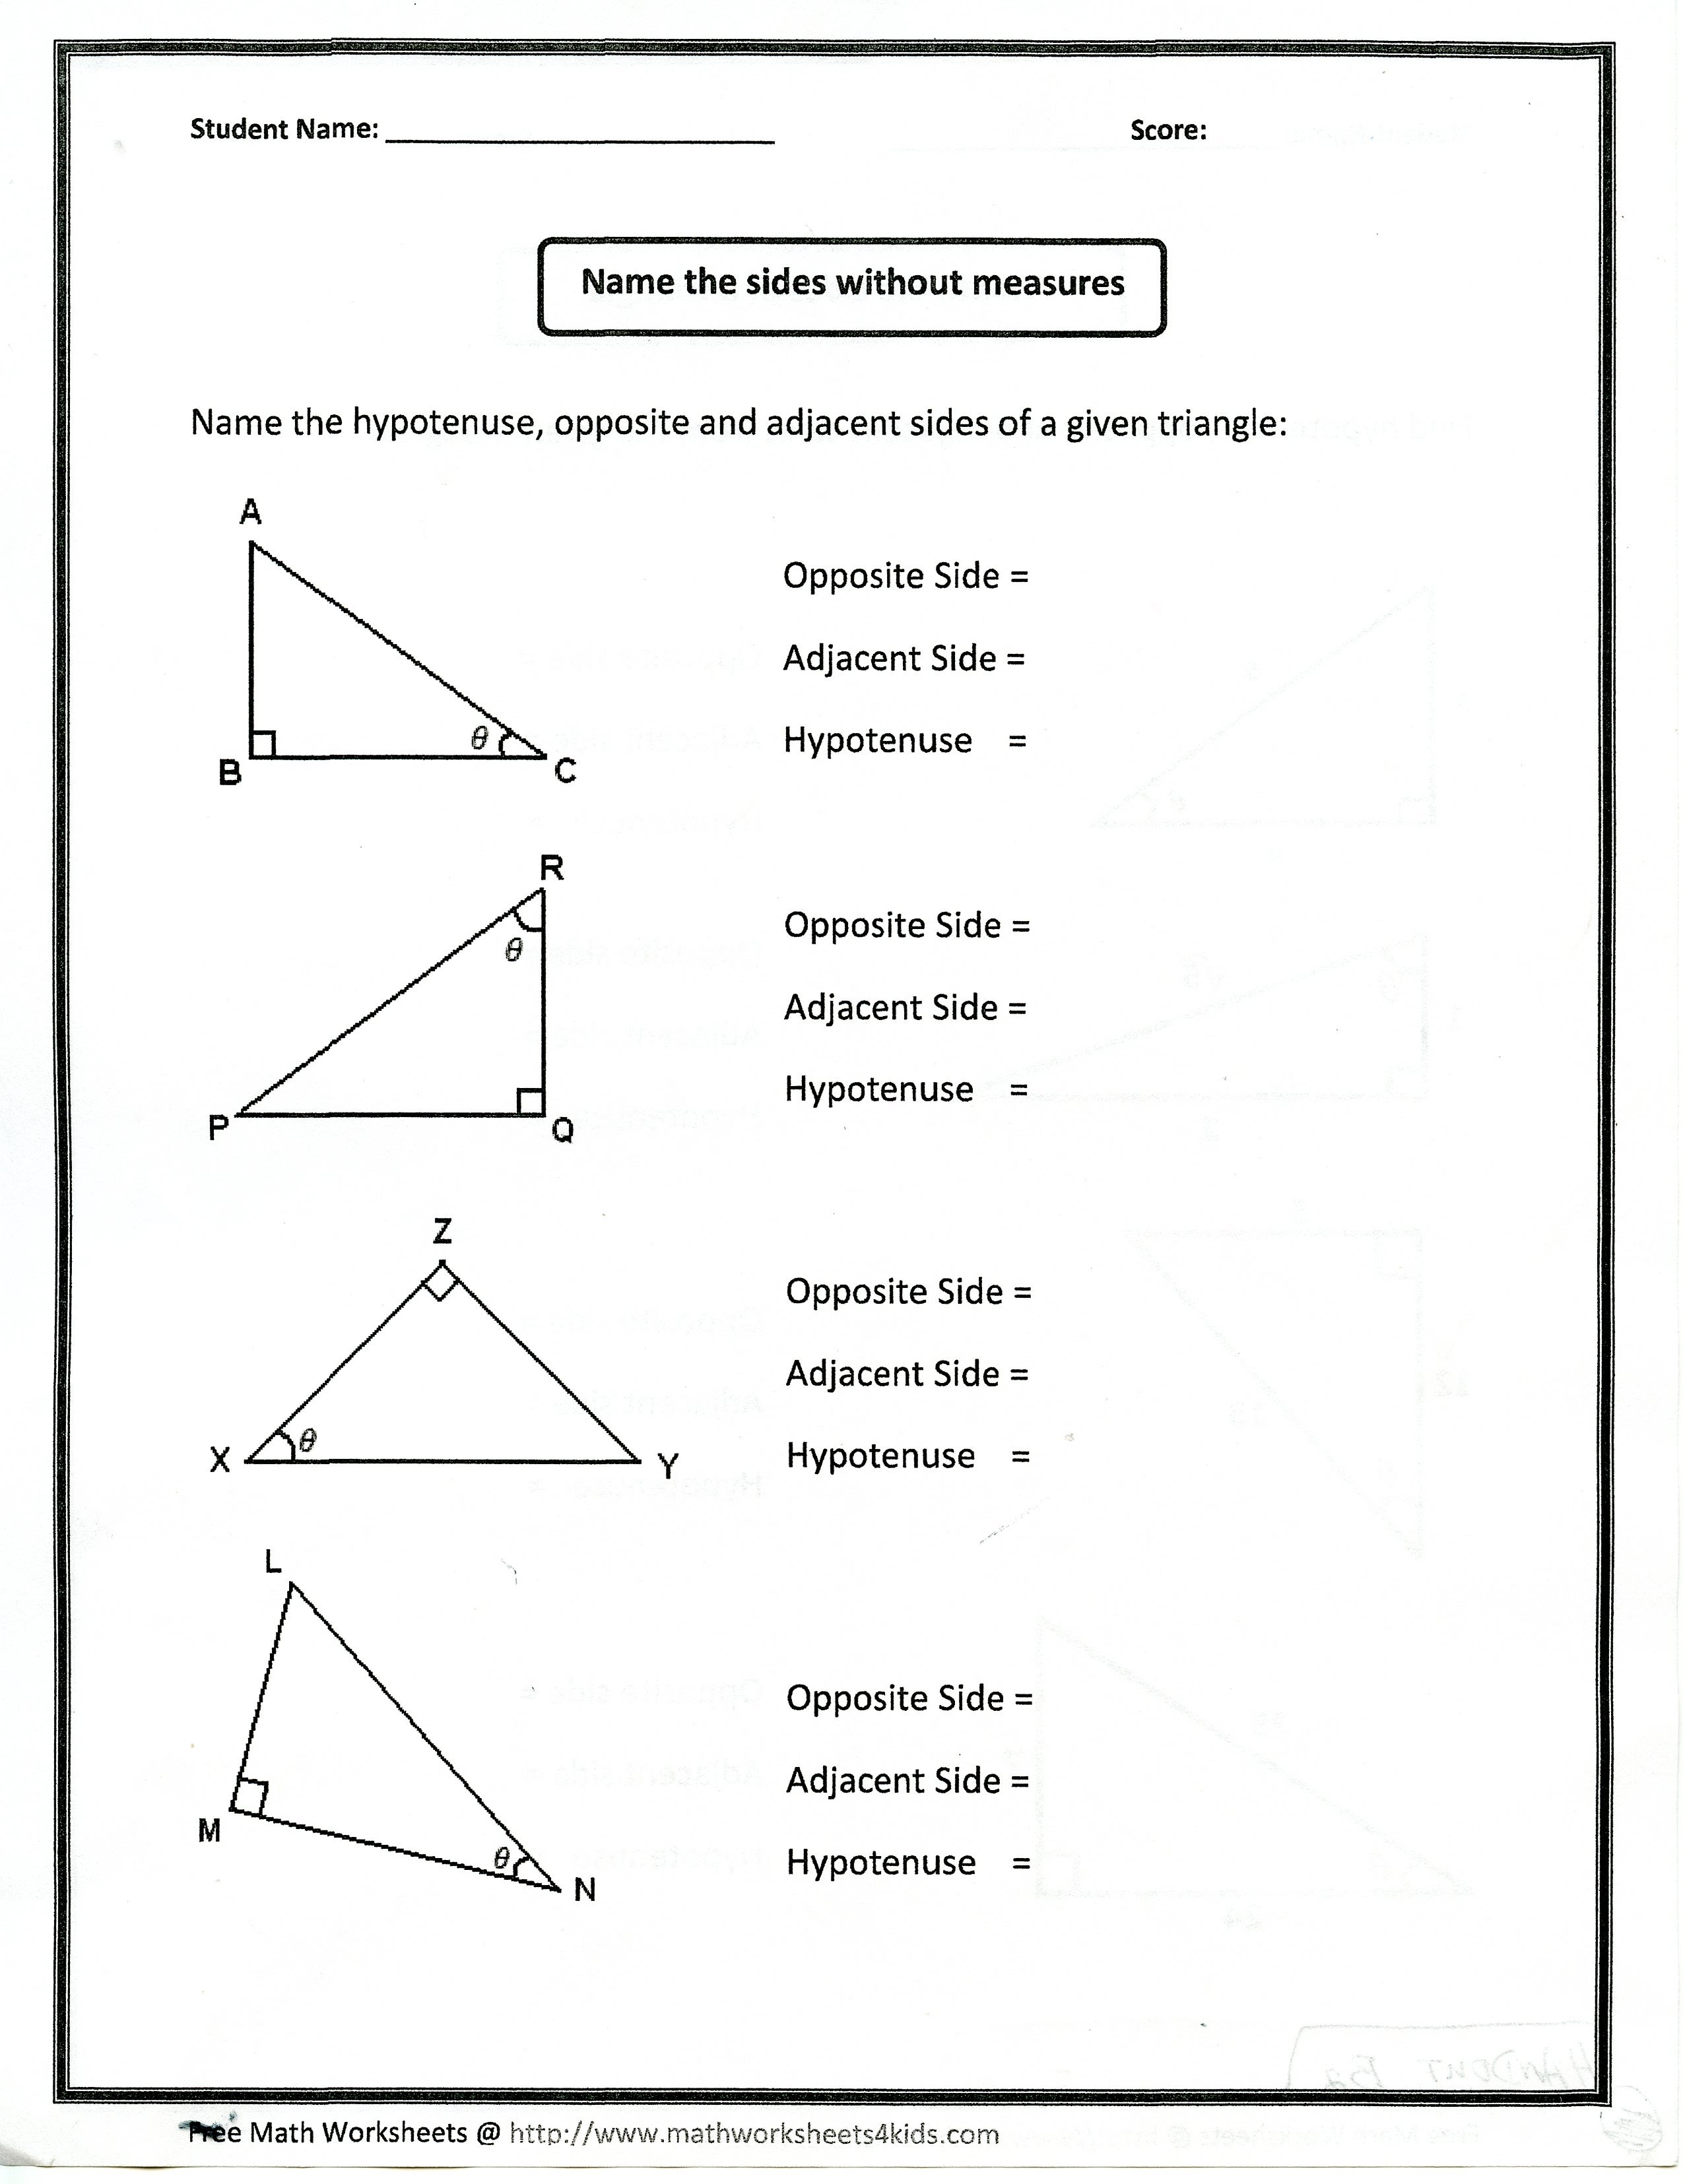 trigonometry how to find opposite adjacent hypotenuse